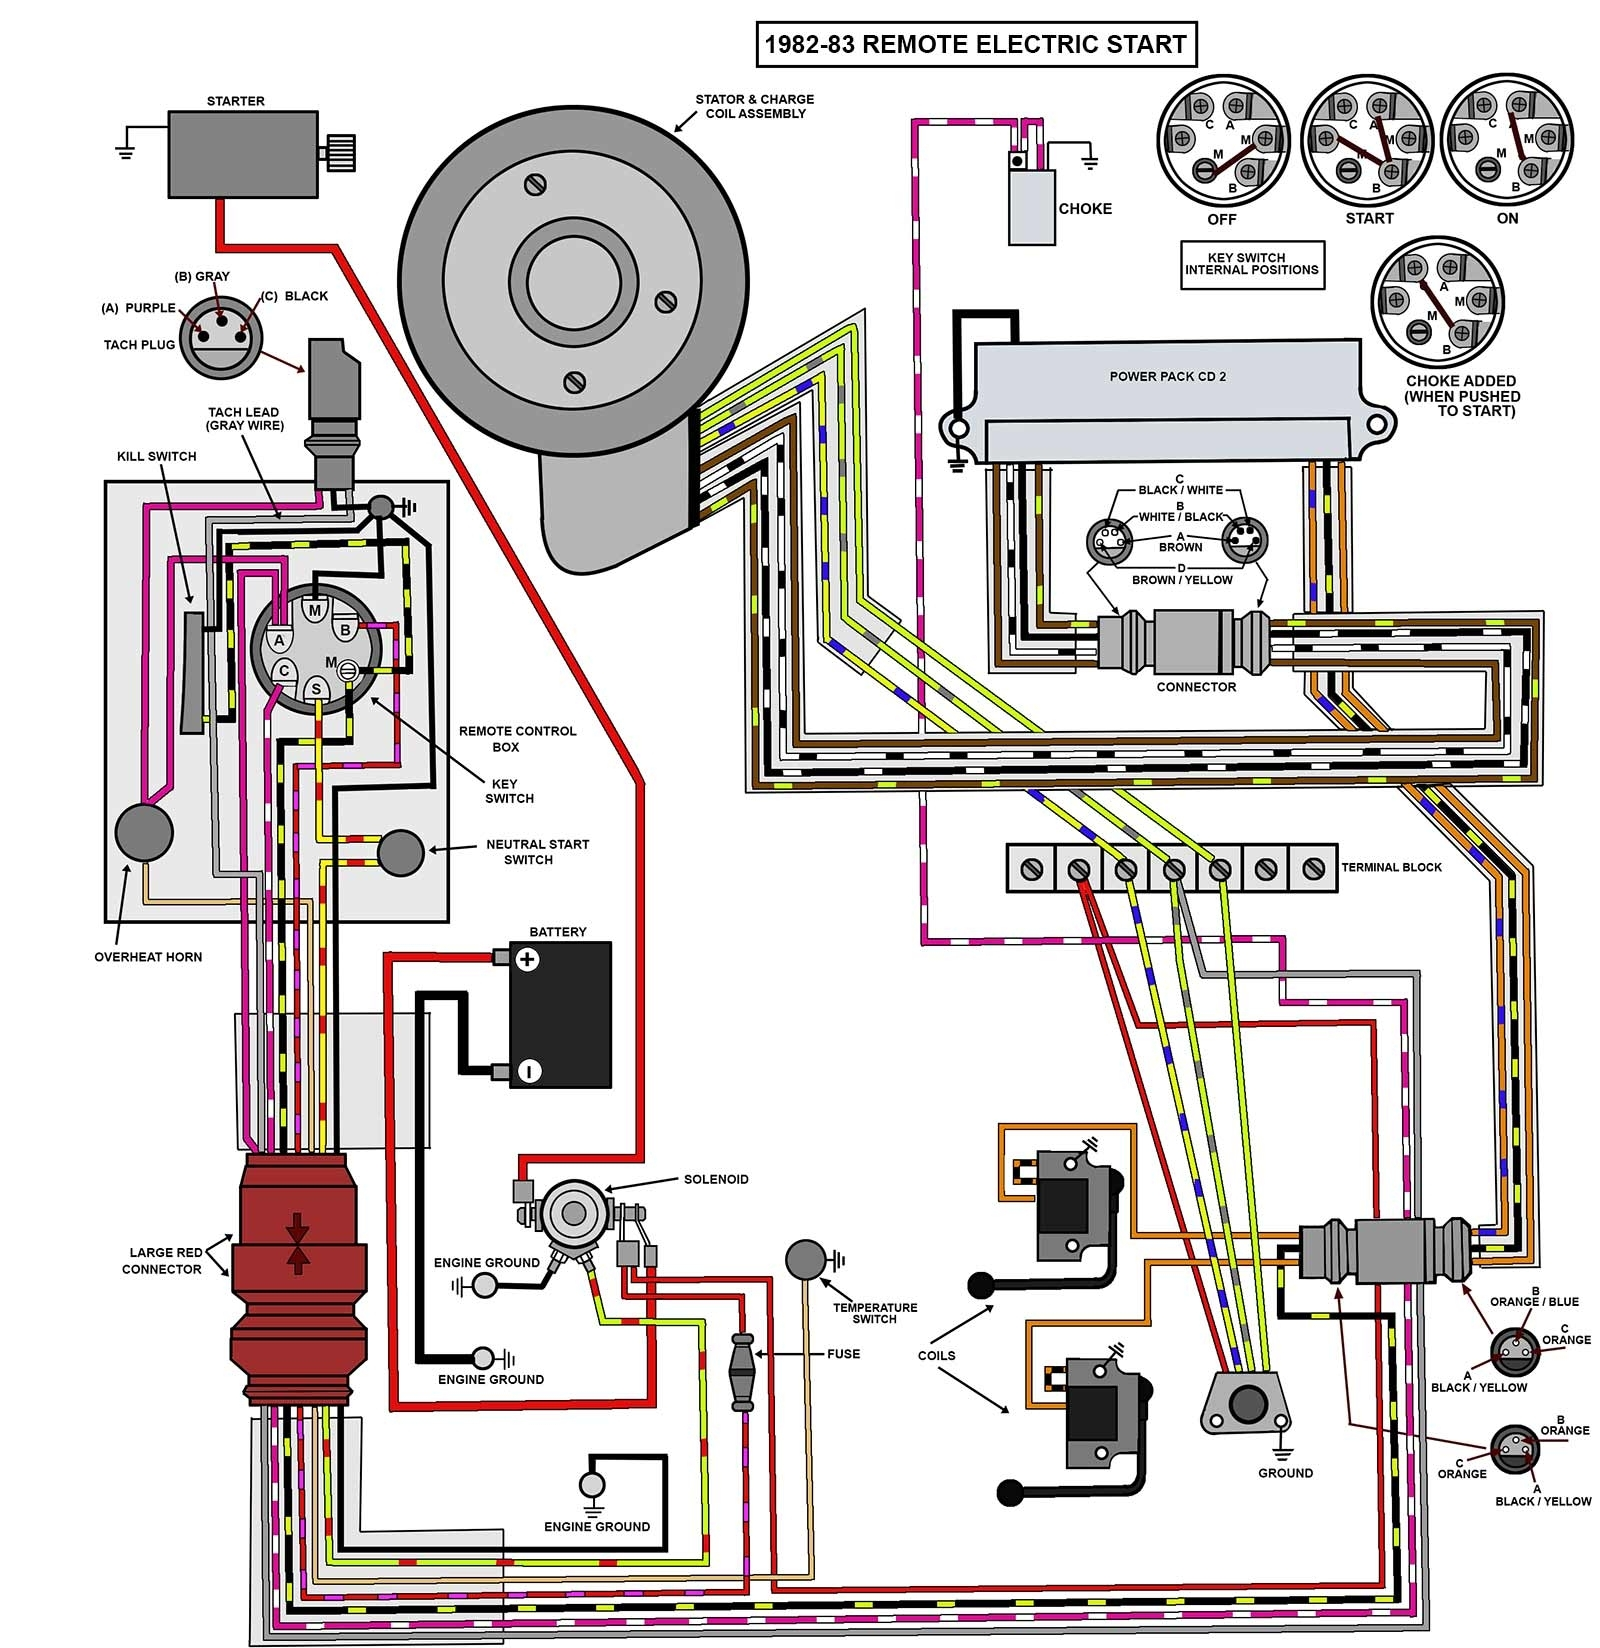 Push to choke ignition switch wiring diagram sierra omc key push Evinrude Outboard Ignition Switch Diagram Push to Choke Ignition Switch Wiring Diagram Mercury 5 Position Ignition Switch Diagram